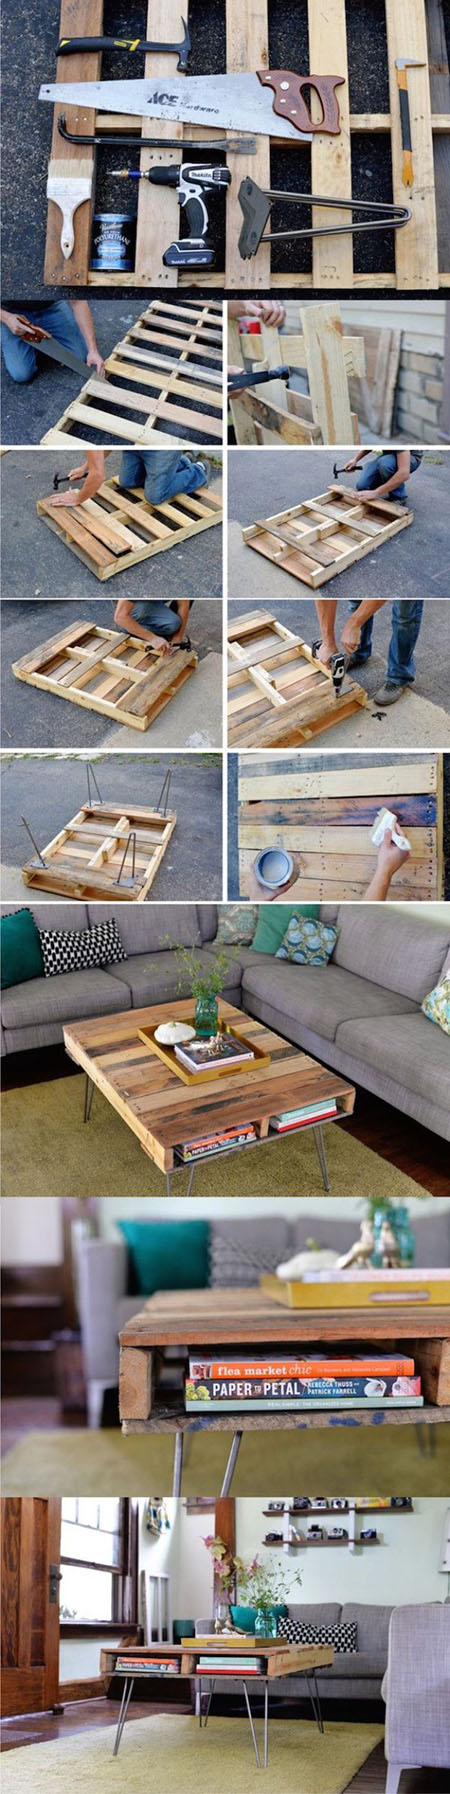 10 DIY Coffee Table Projects 8c27465e